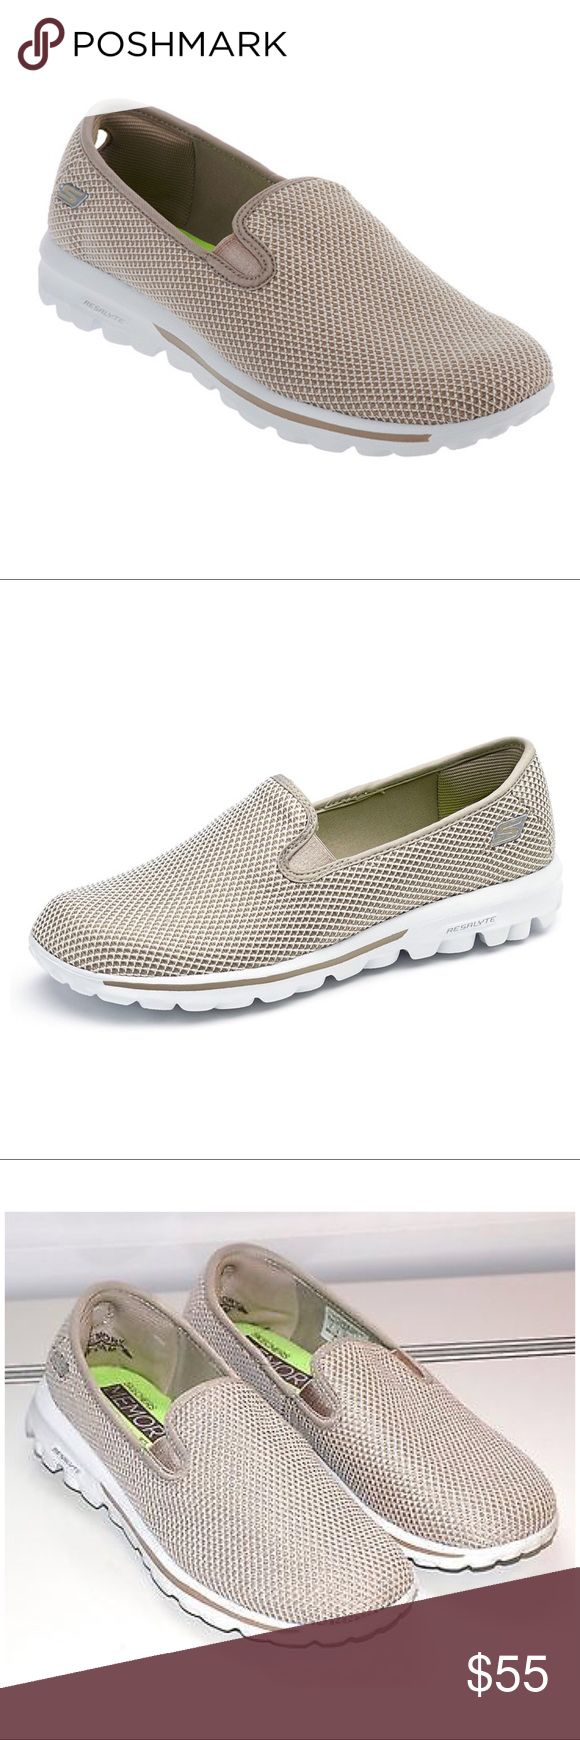 SKECHERS GOWALK TAUPE MESH MEMORY FOAM SNEAKERS You'll dazzle in these slip-on mesh sneakers from Skechers. The memory form fit will help provide you with all-day comfort.  Slip-on style, mesh body, double goring Resalyte midsole, textured outsole; memory form fit design with foam padded insole, heel, and instep Soft impulse pods on the outsole for comfortable cushioning 360 Degree Responsive Flexibility flexes and twists as you walk OrthoLite anti-microbial sock liner can help inhibit odor…